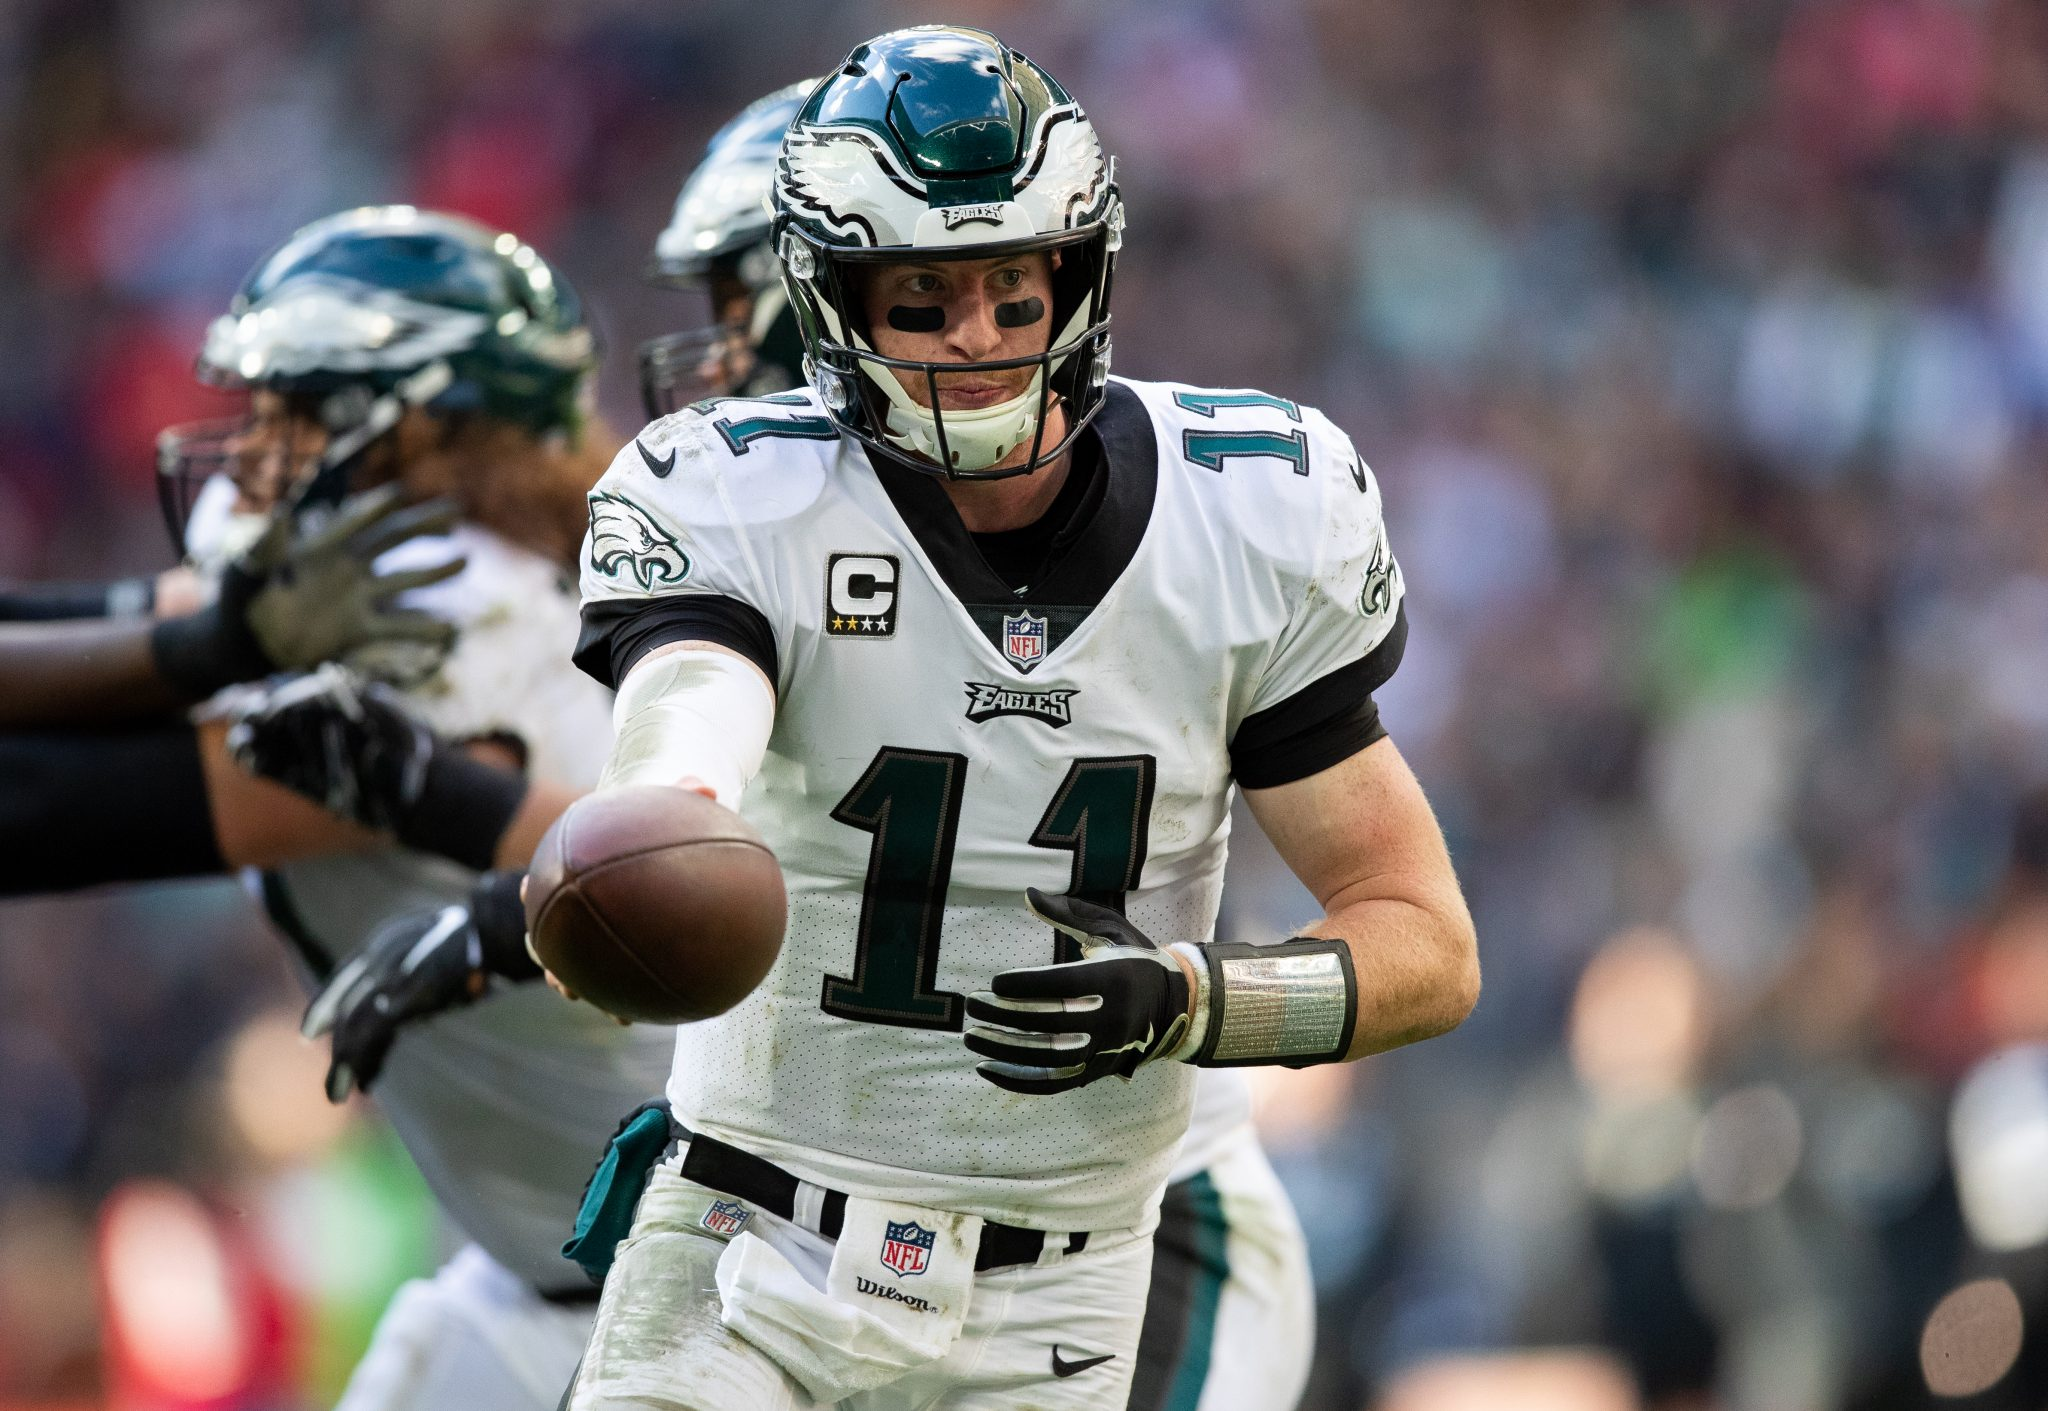 Philadelphia Eagles quarterback Carson Wentz  (11) in action with the ball. Philadelphia Eagles and the Jacksonville Jaguars play in the NFL London Games at Wembley Stadium in London on Sunday, October 28th photo: Jed Leicester/NFL